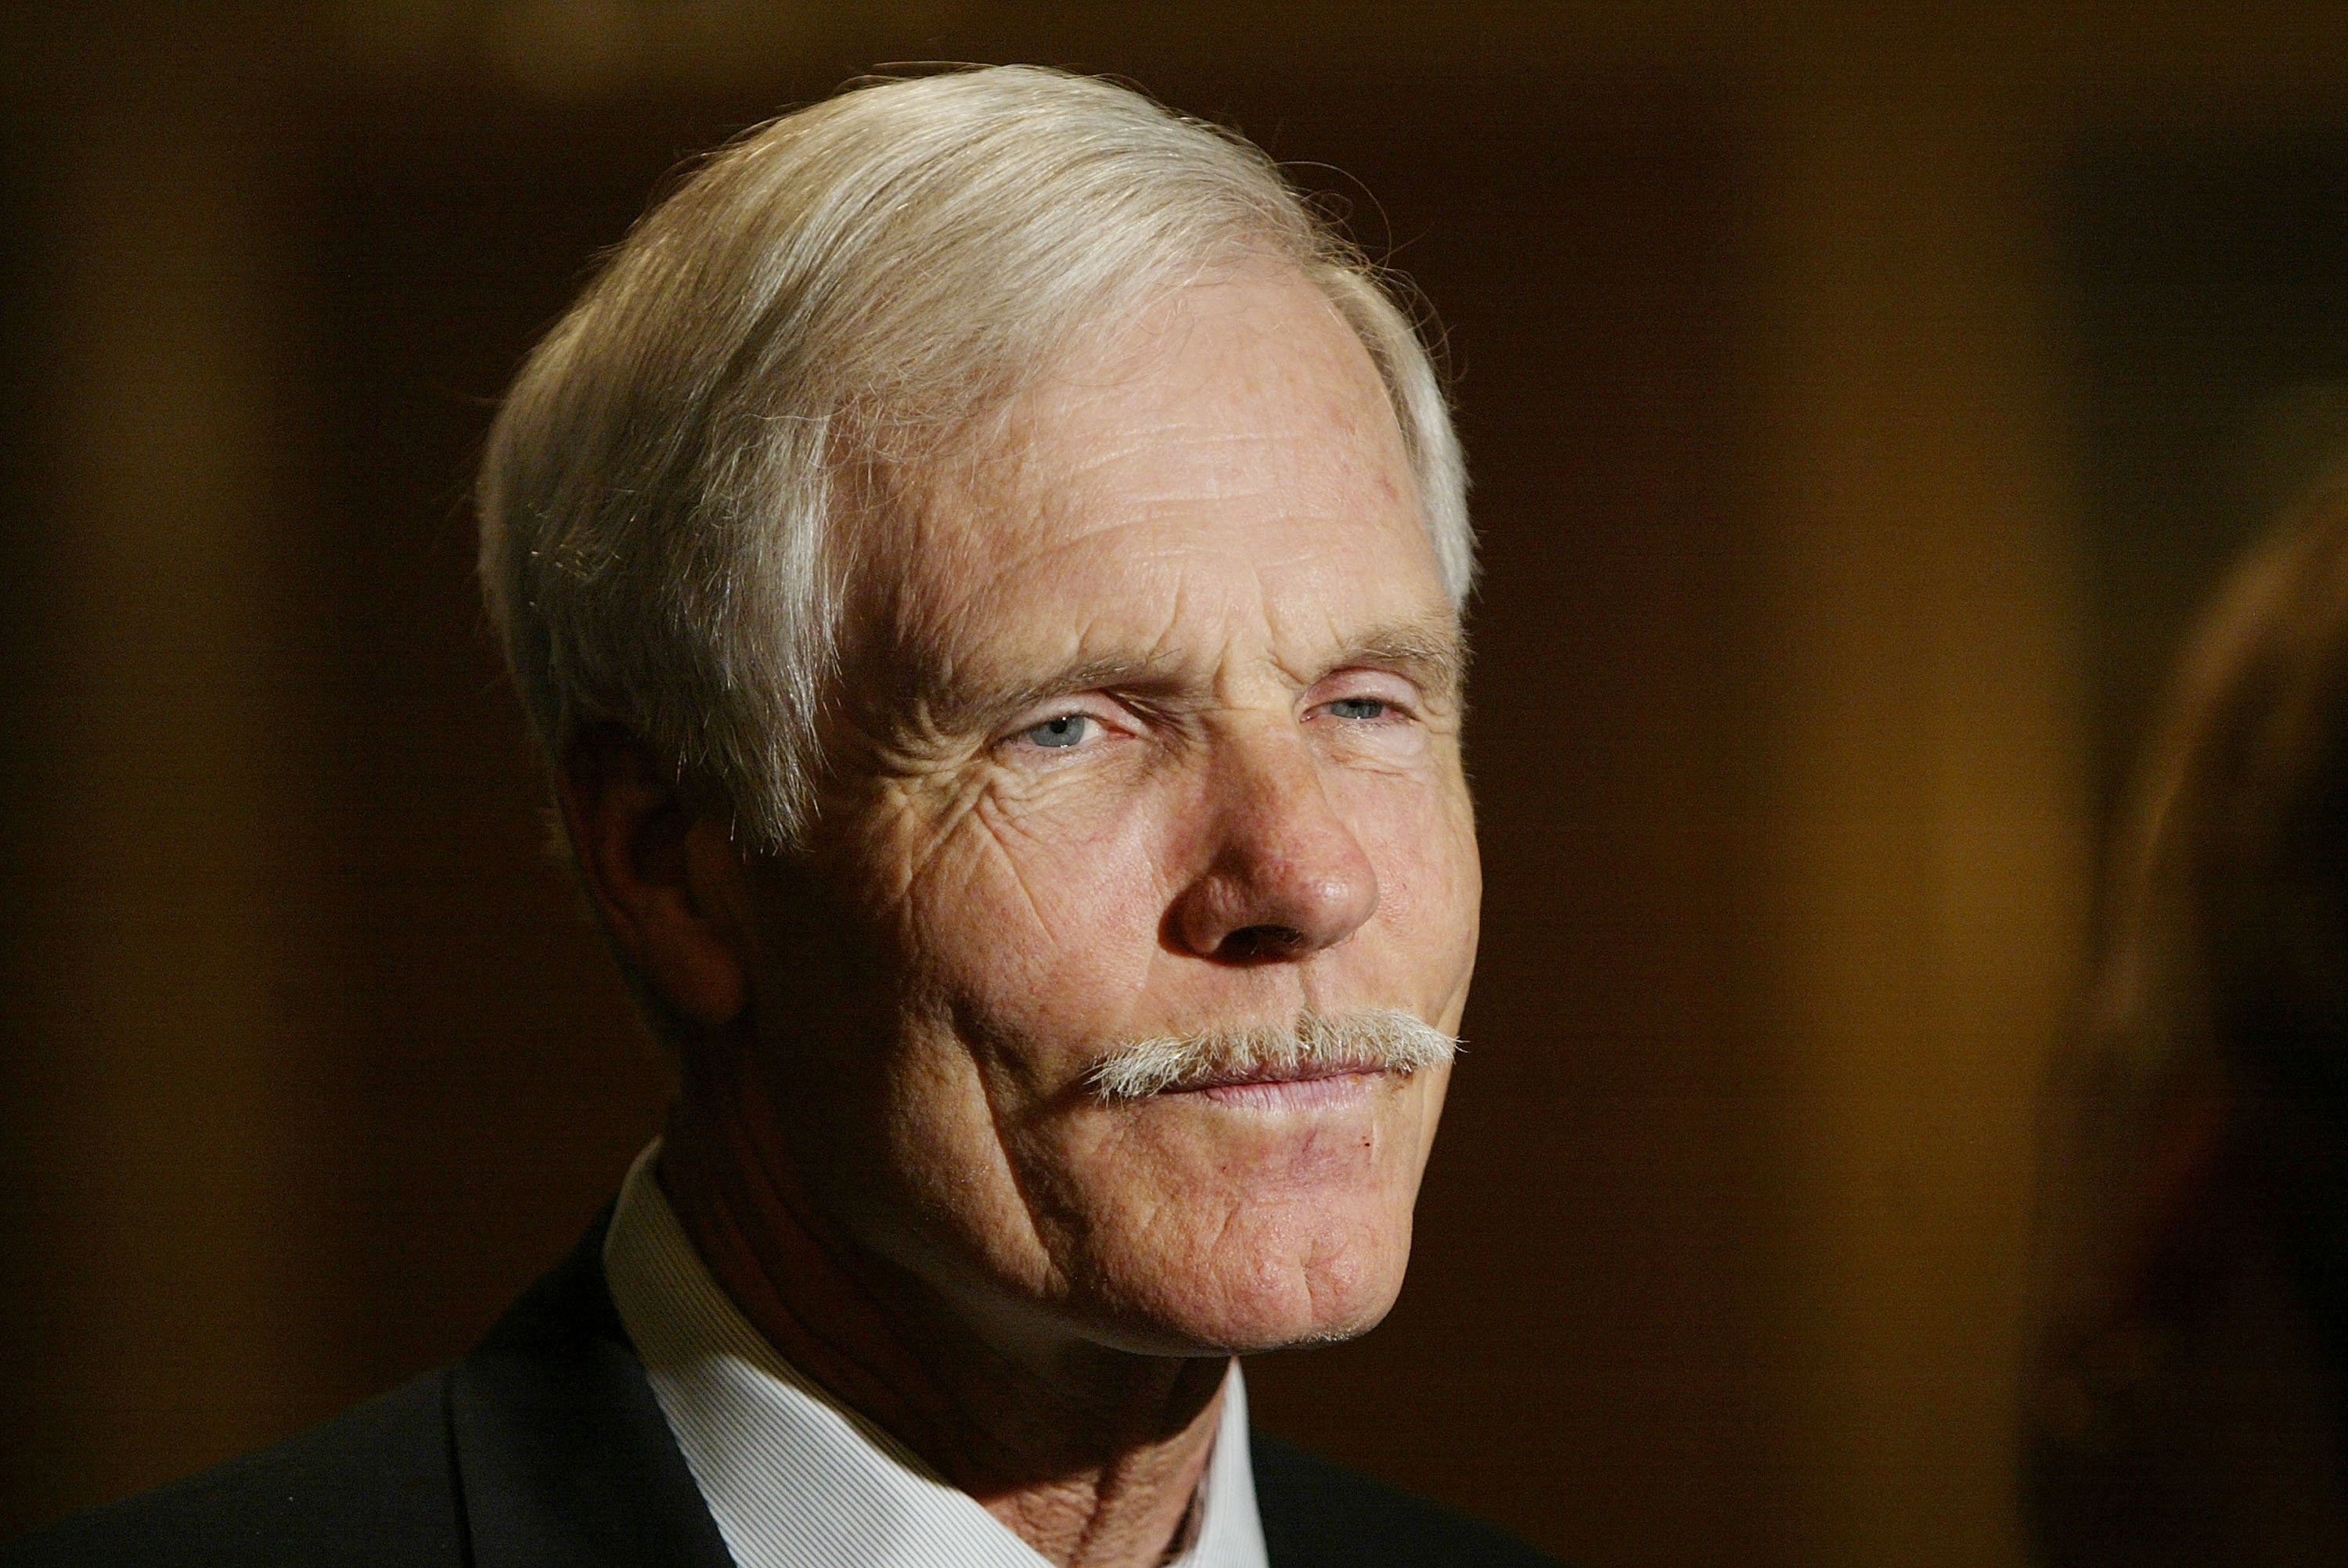 Media Mogul Ted Turner attends the 'Hollywood Radio and Television Society's Newsmakers Luncheon' at the Regent Beverly Wilshire April 8, 2004, in Los Angeles, California. (Getty Images)